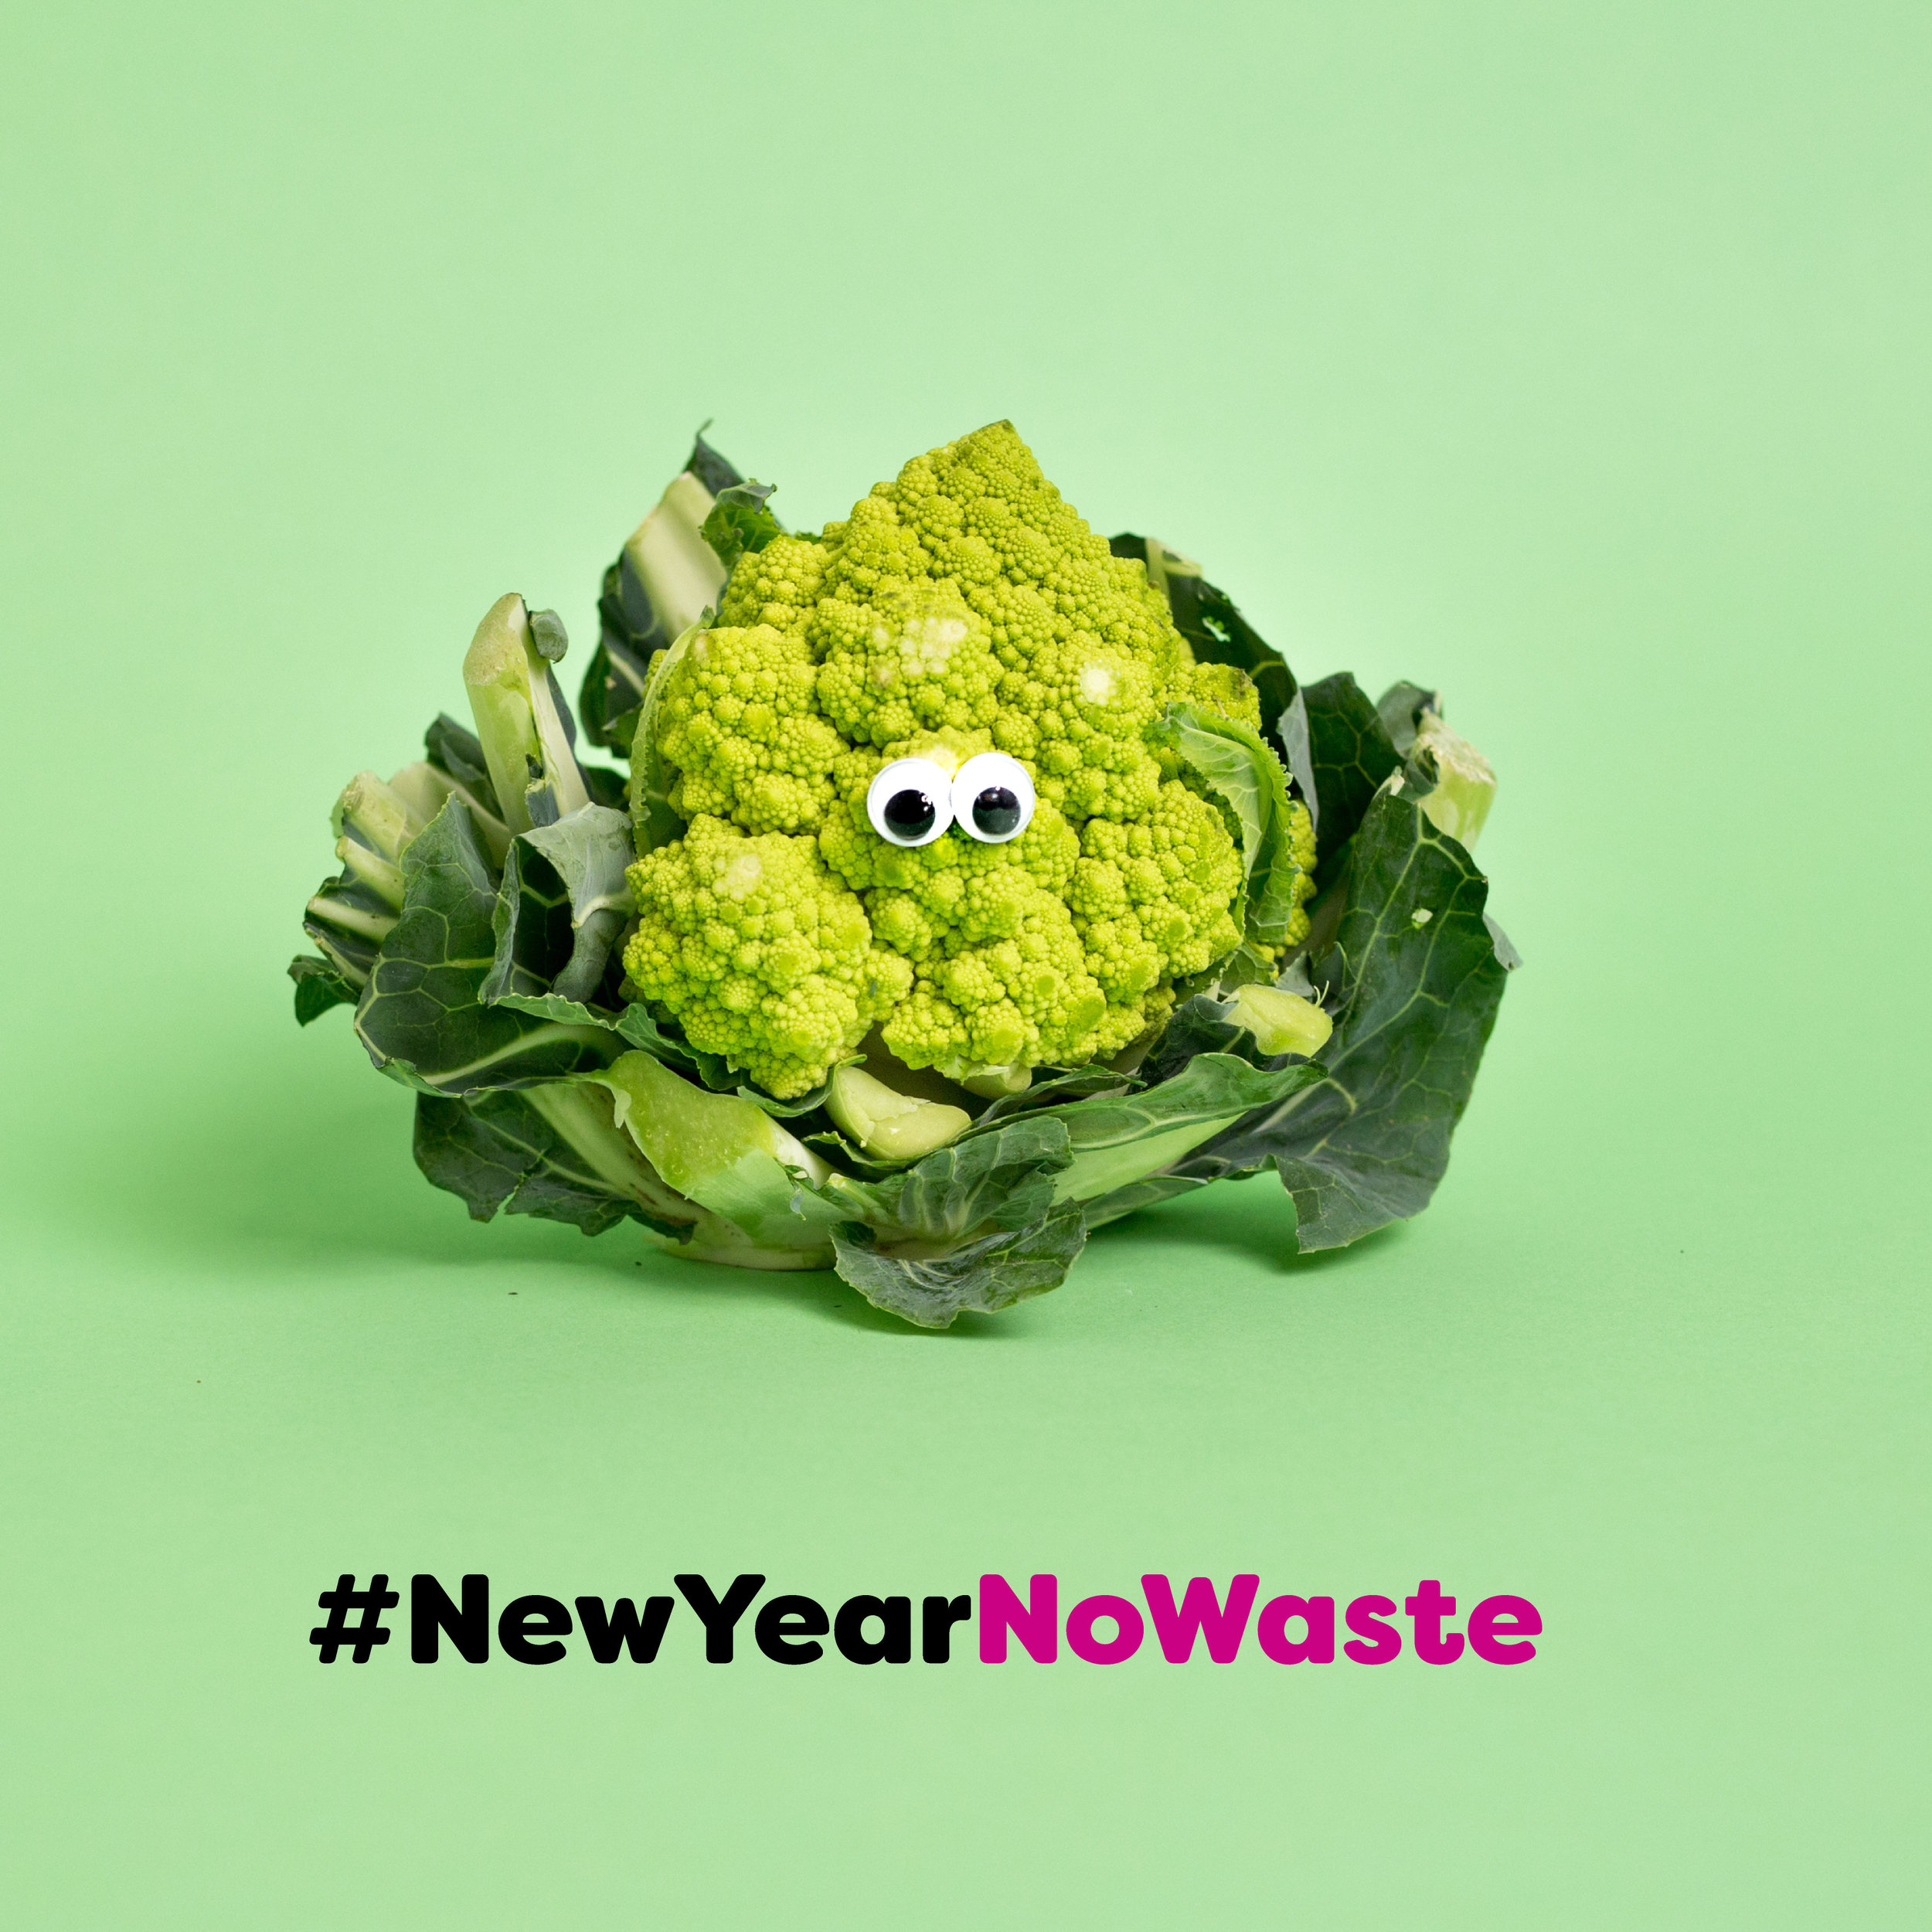 New-Year-No-Waste-Social-Romanesco-Pic-.jpg